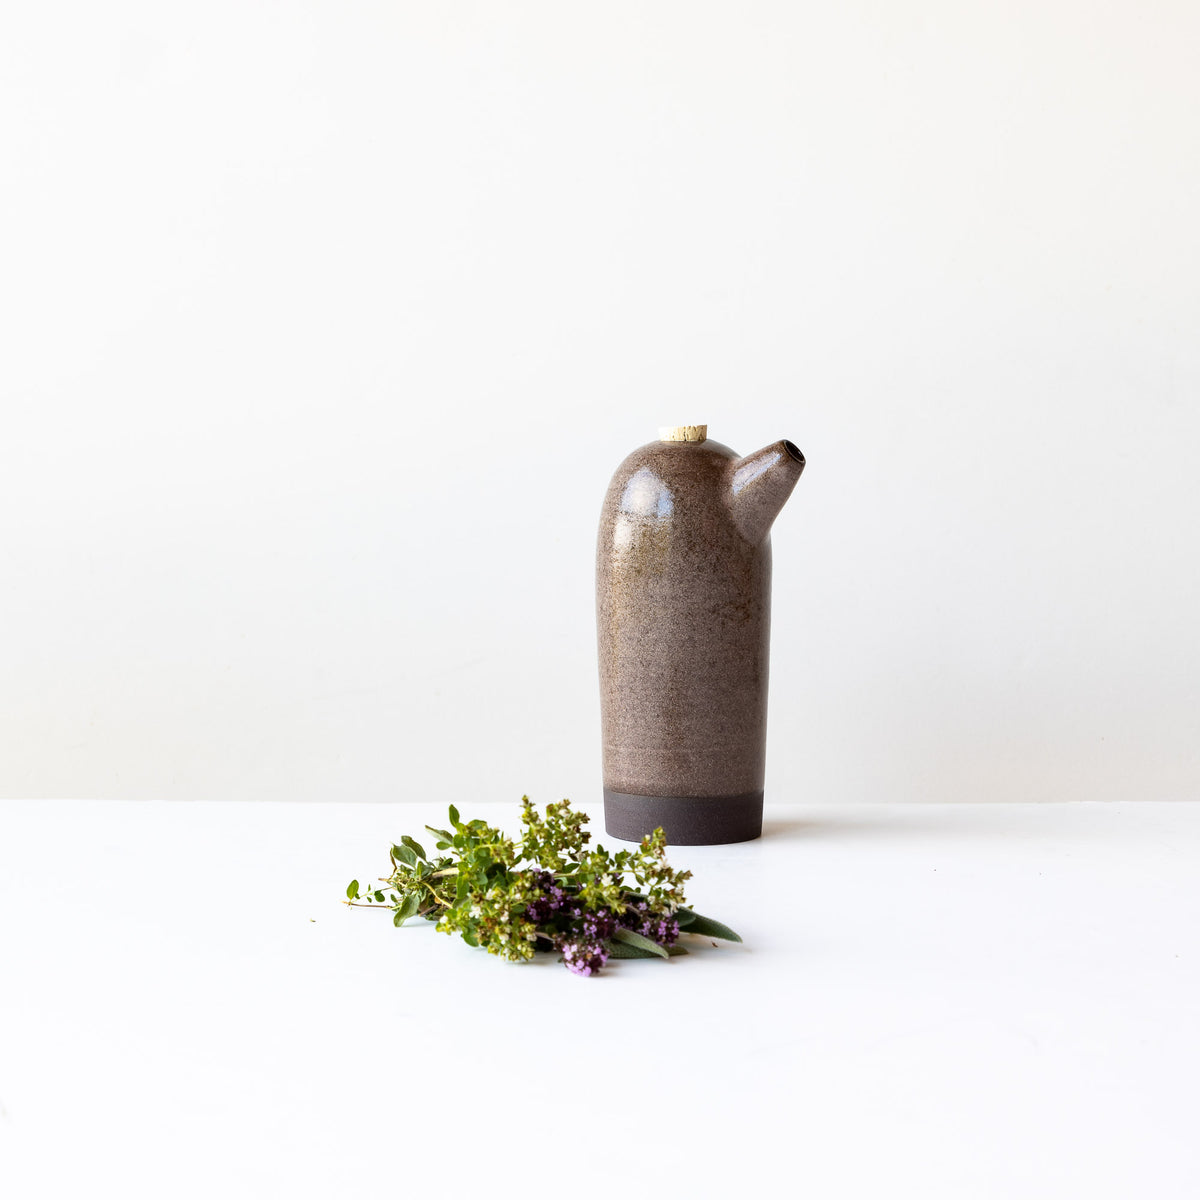 Dark Pink Handmade Stoneware Vinegar Bottle - Sold by Chic & Basta